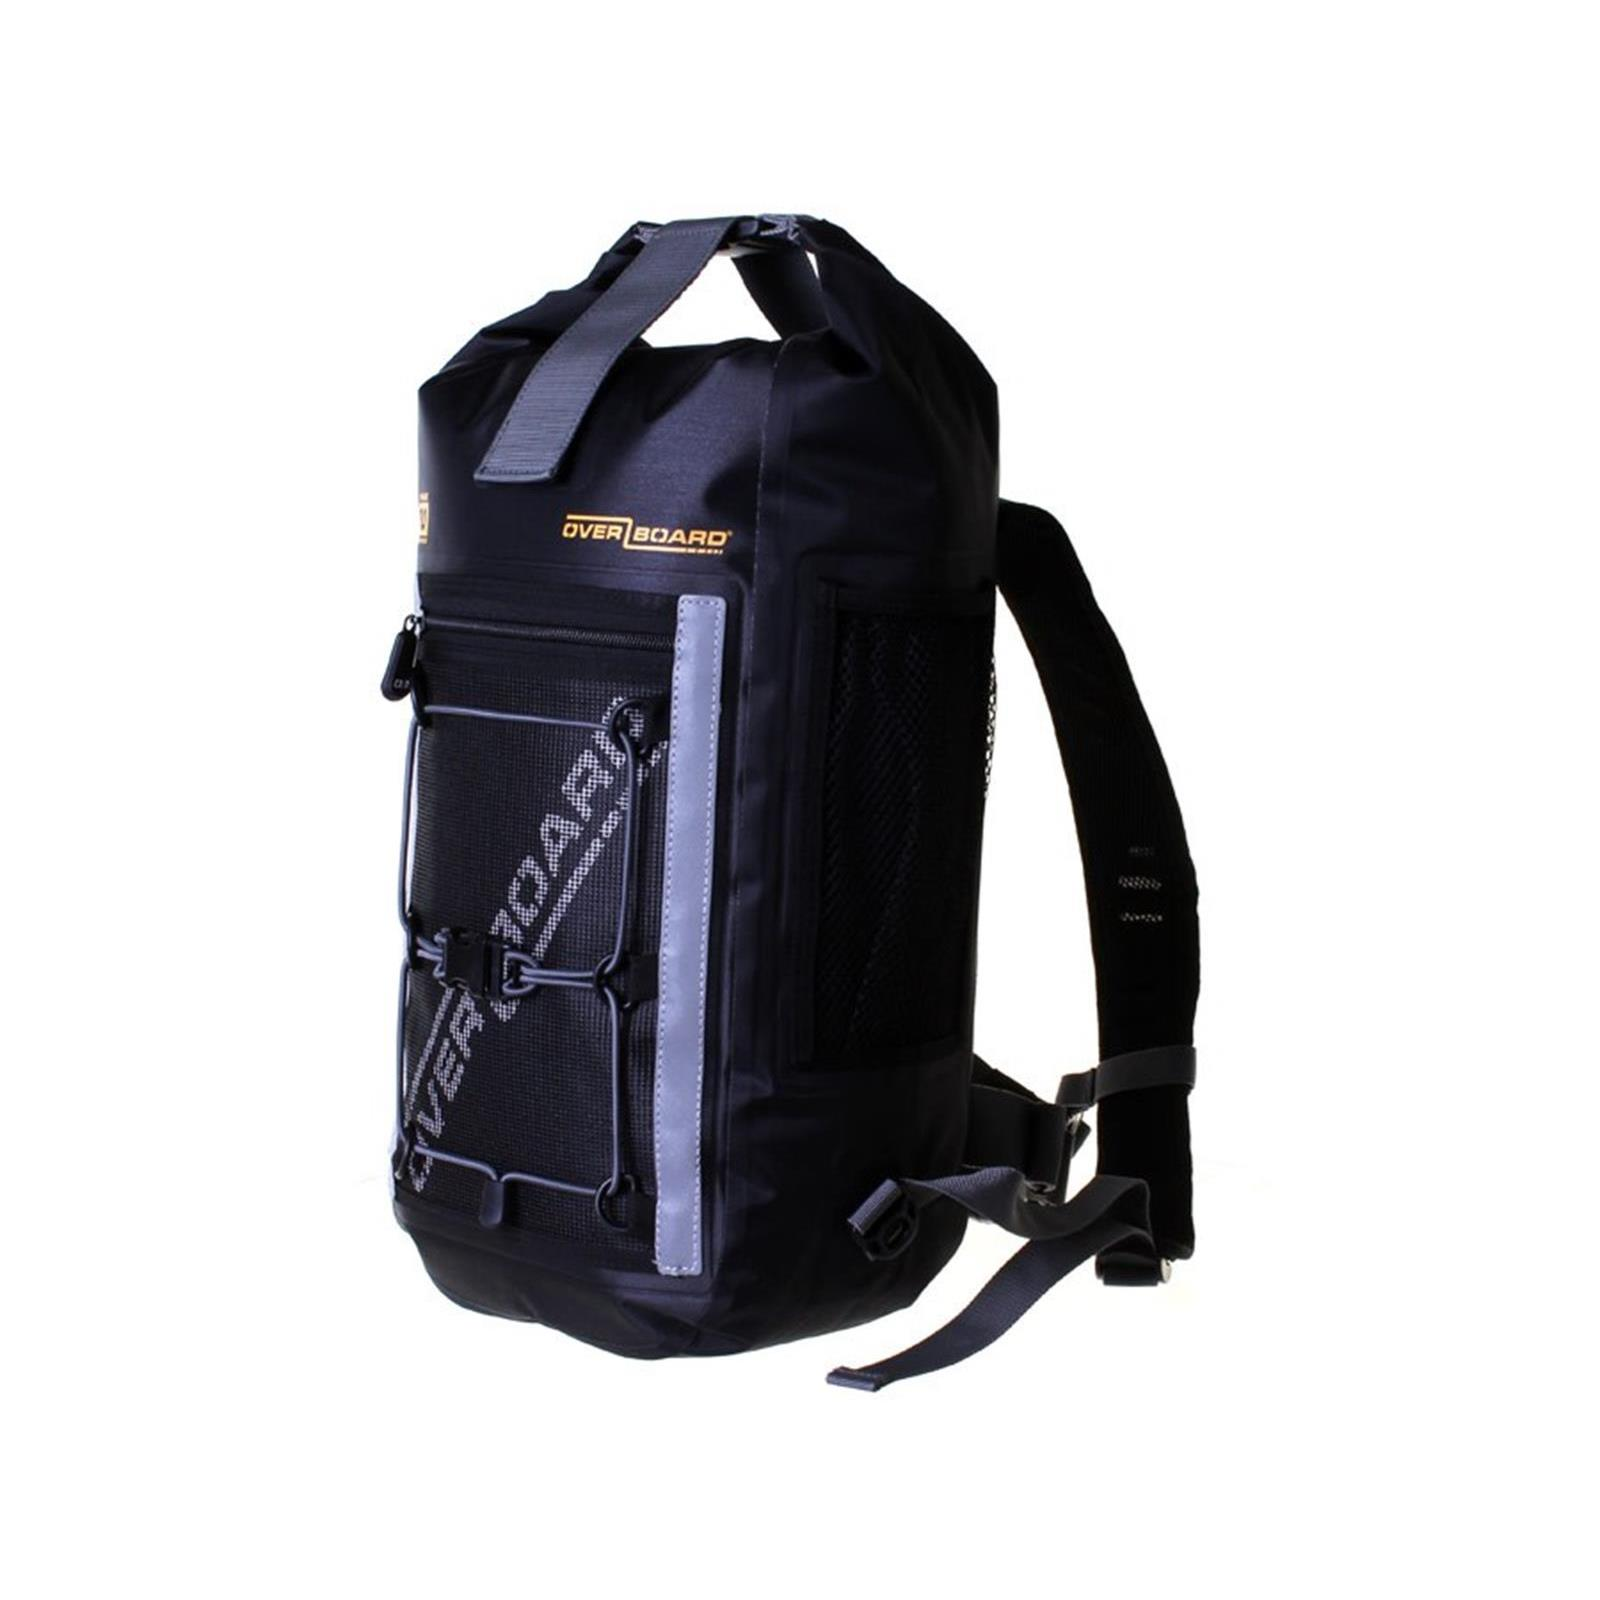 OverBoard wasserdichter Rucksack LIGHT 20 Lit Schw OB1135BLK Pro-Light